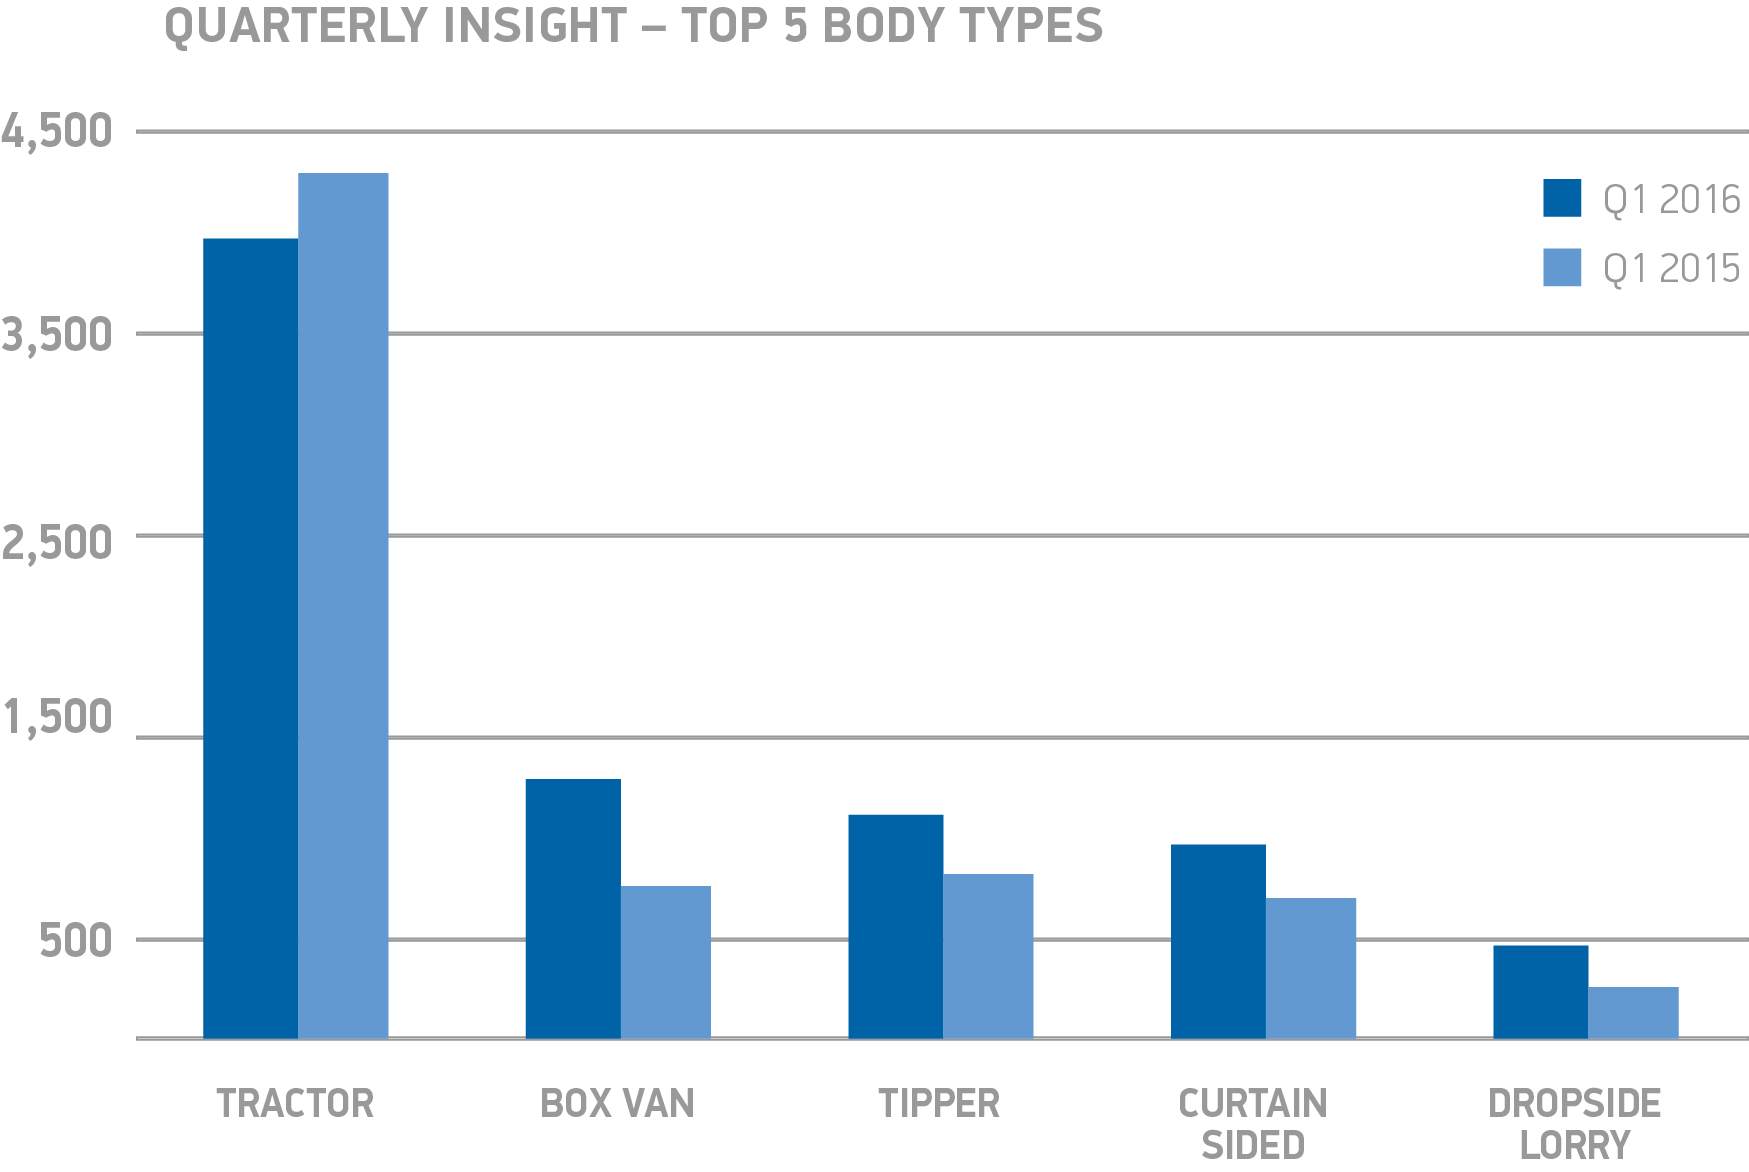 HGV Quarterly insight Top 5 body types chart